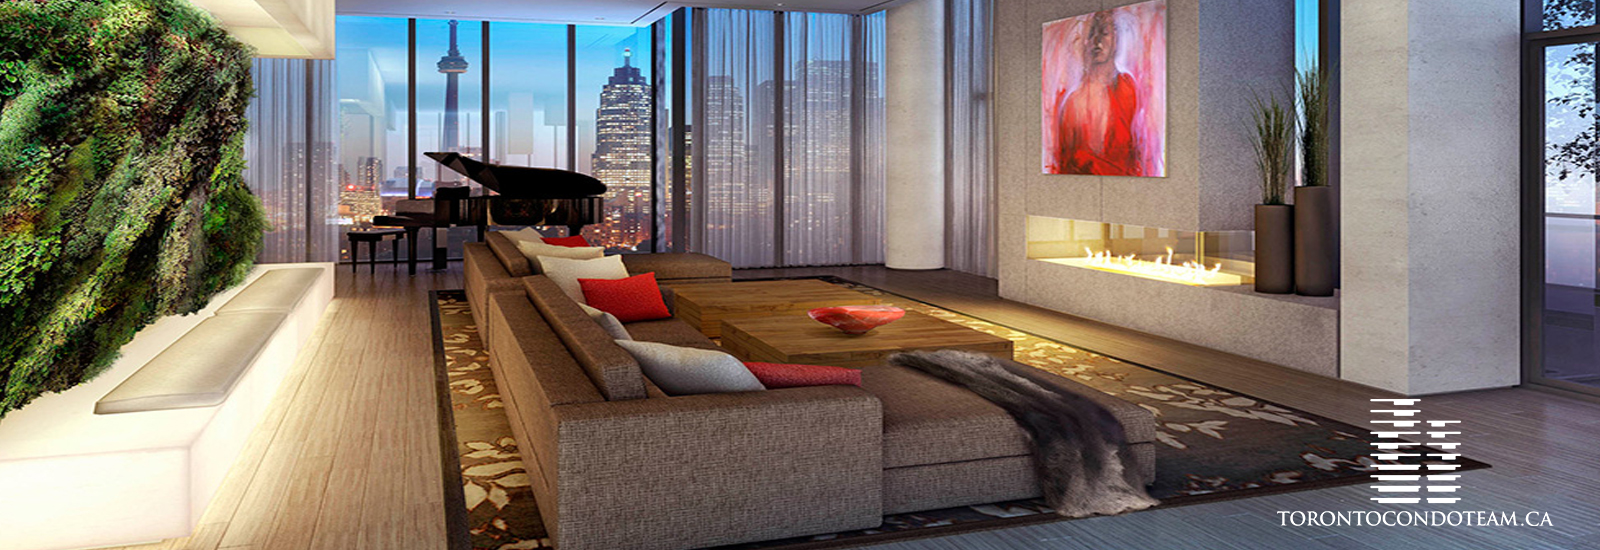 5 Sherbourne Street Condos For Sale